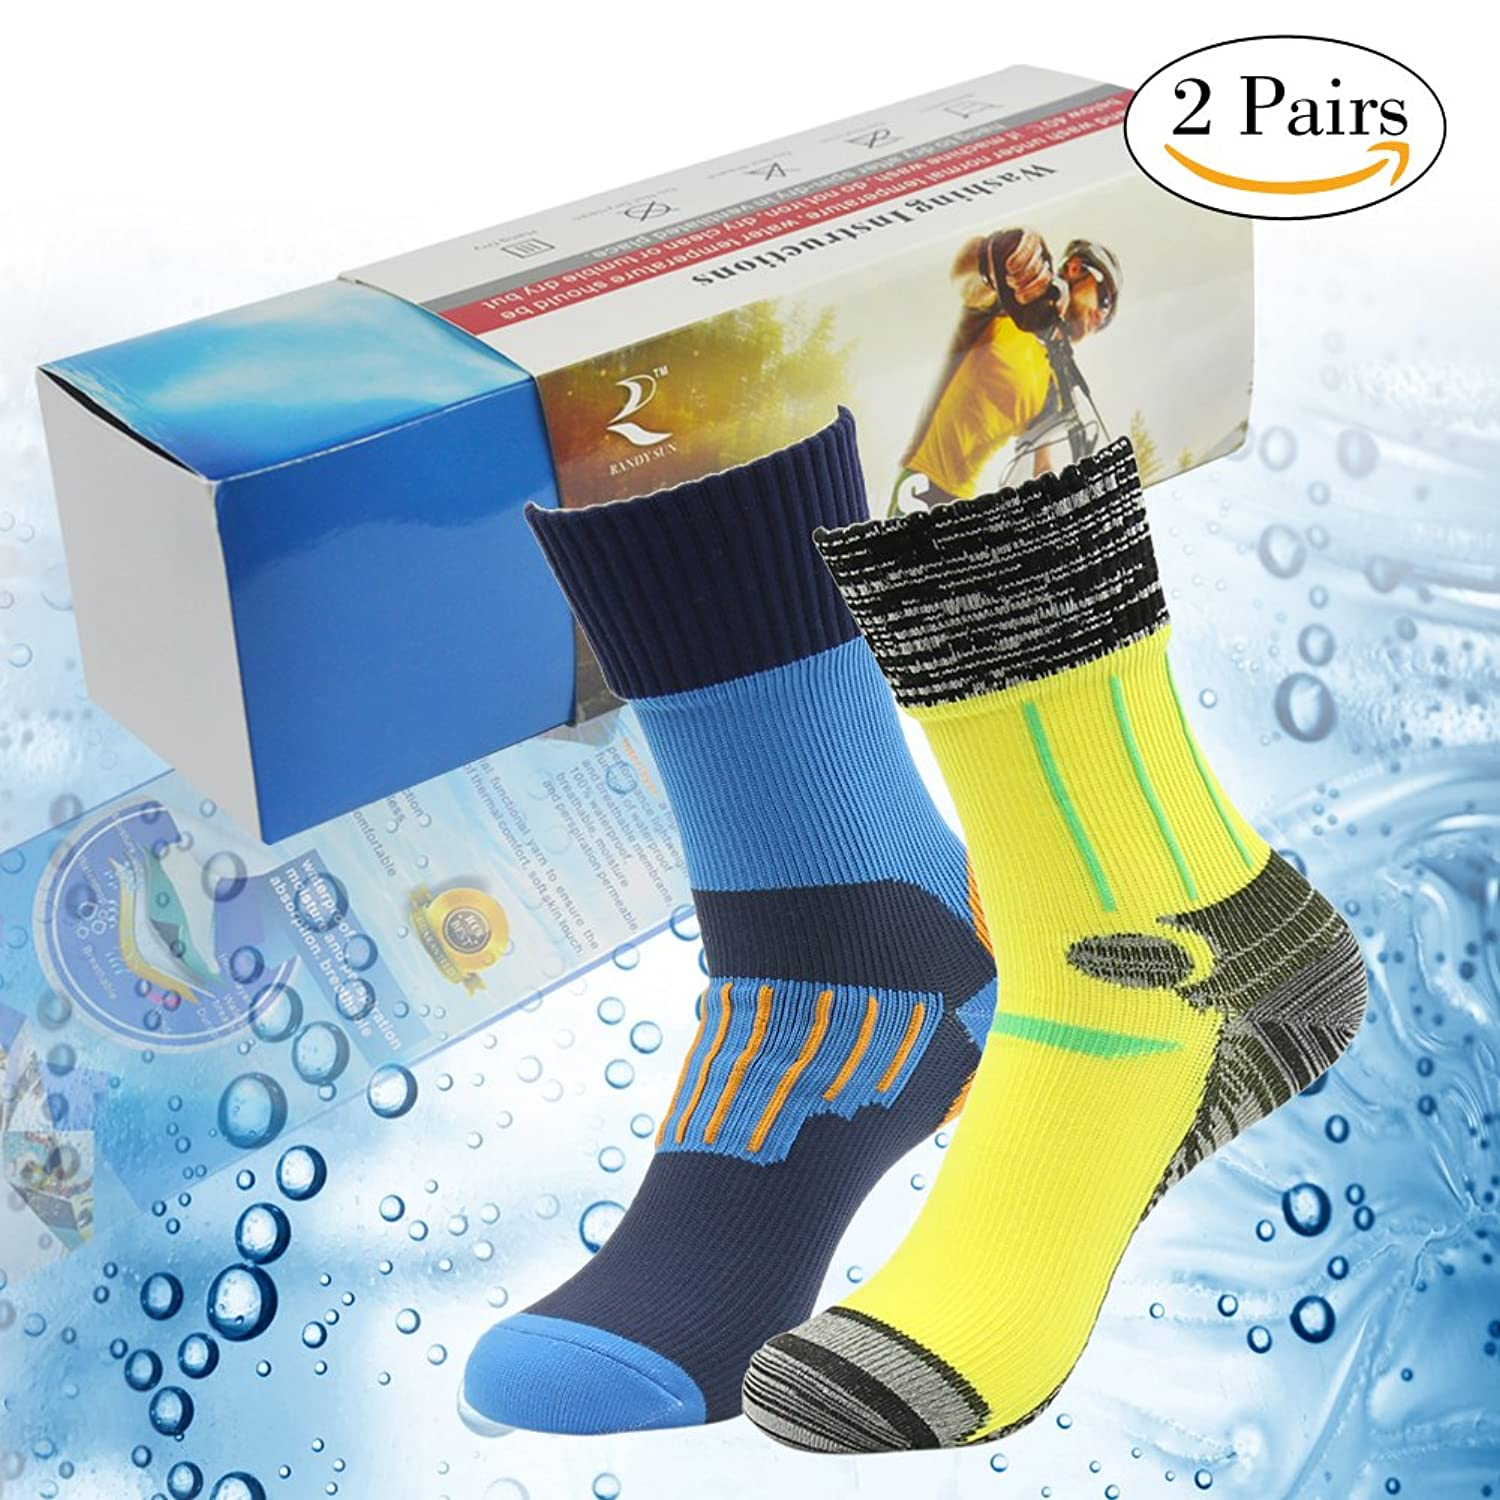 100% Waterproof Breathable Socks, [SGS Certified] RANDY SUN Unisex Sport Climbing Skiing Trekking Hiking Socks